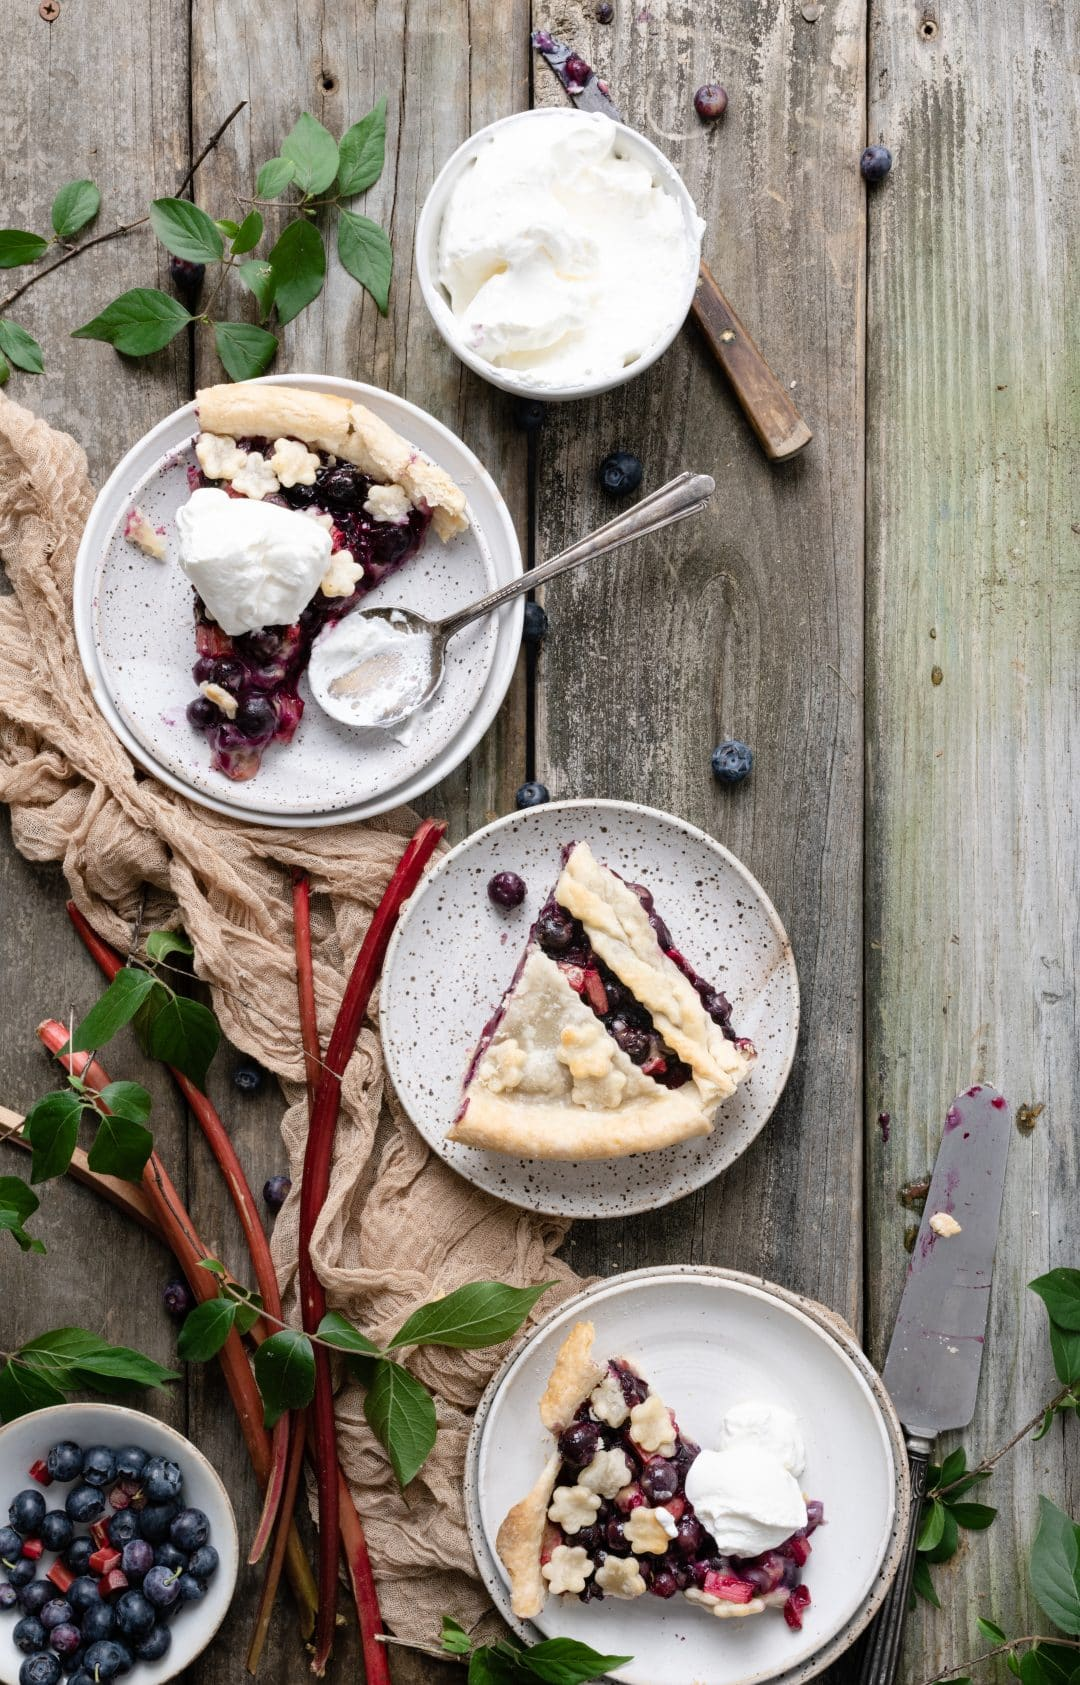 Blueberry Rhubarb Pie slices with whipped cream